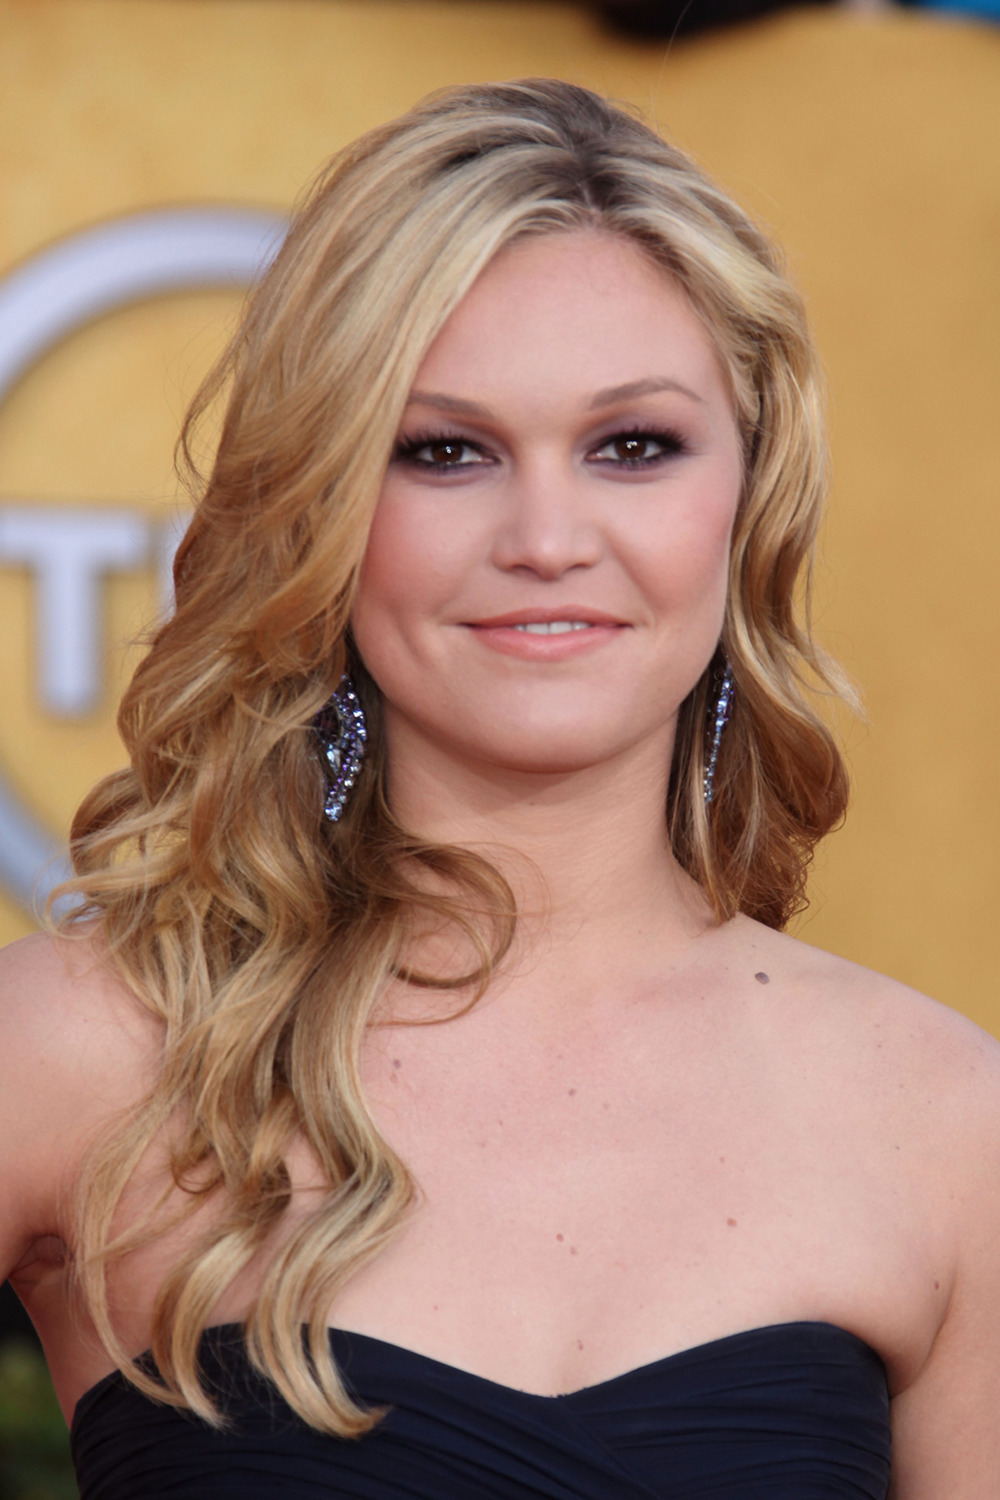 Ver fotos de julia stiles 36